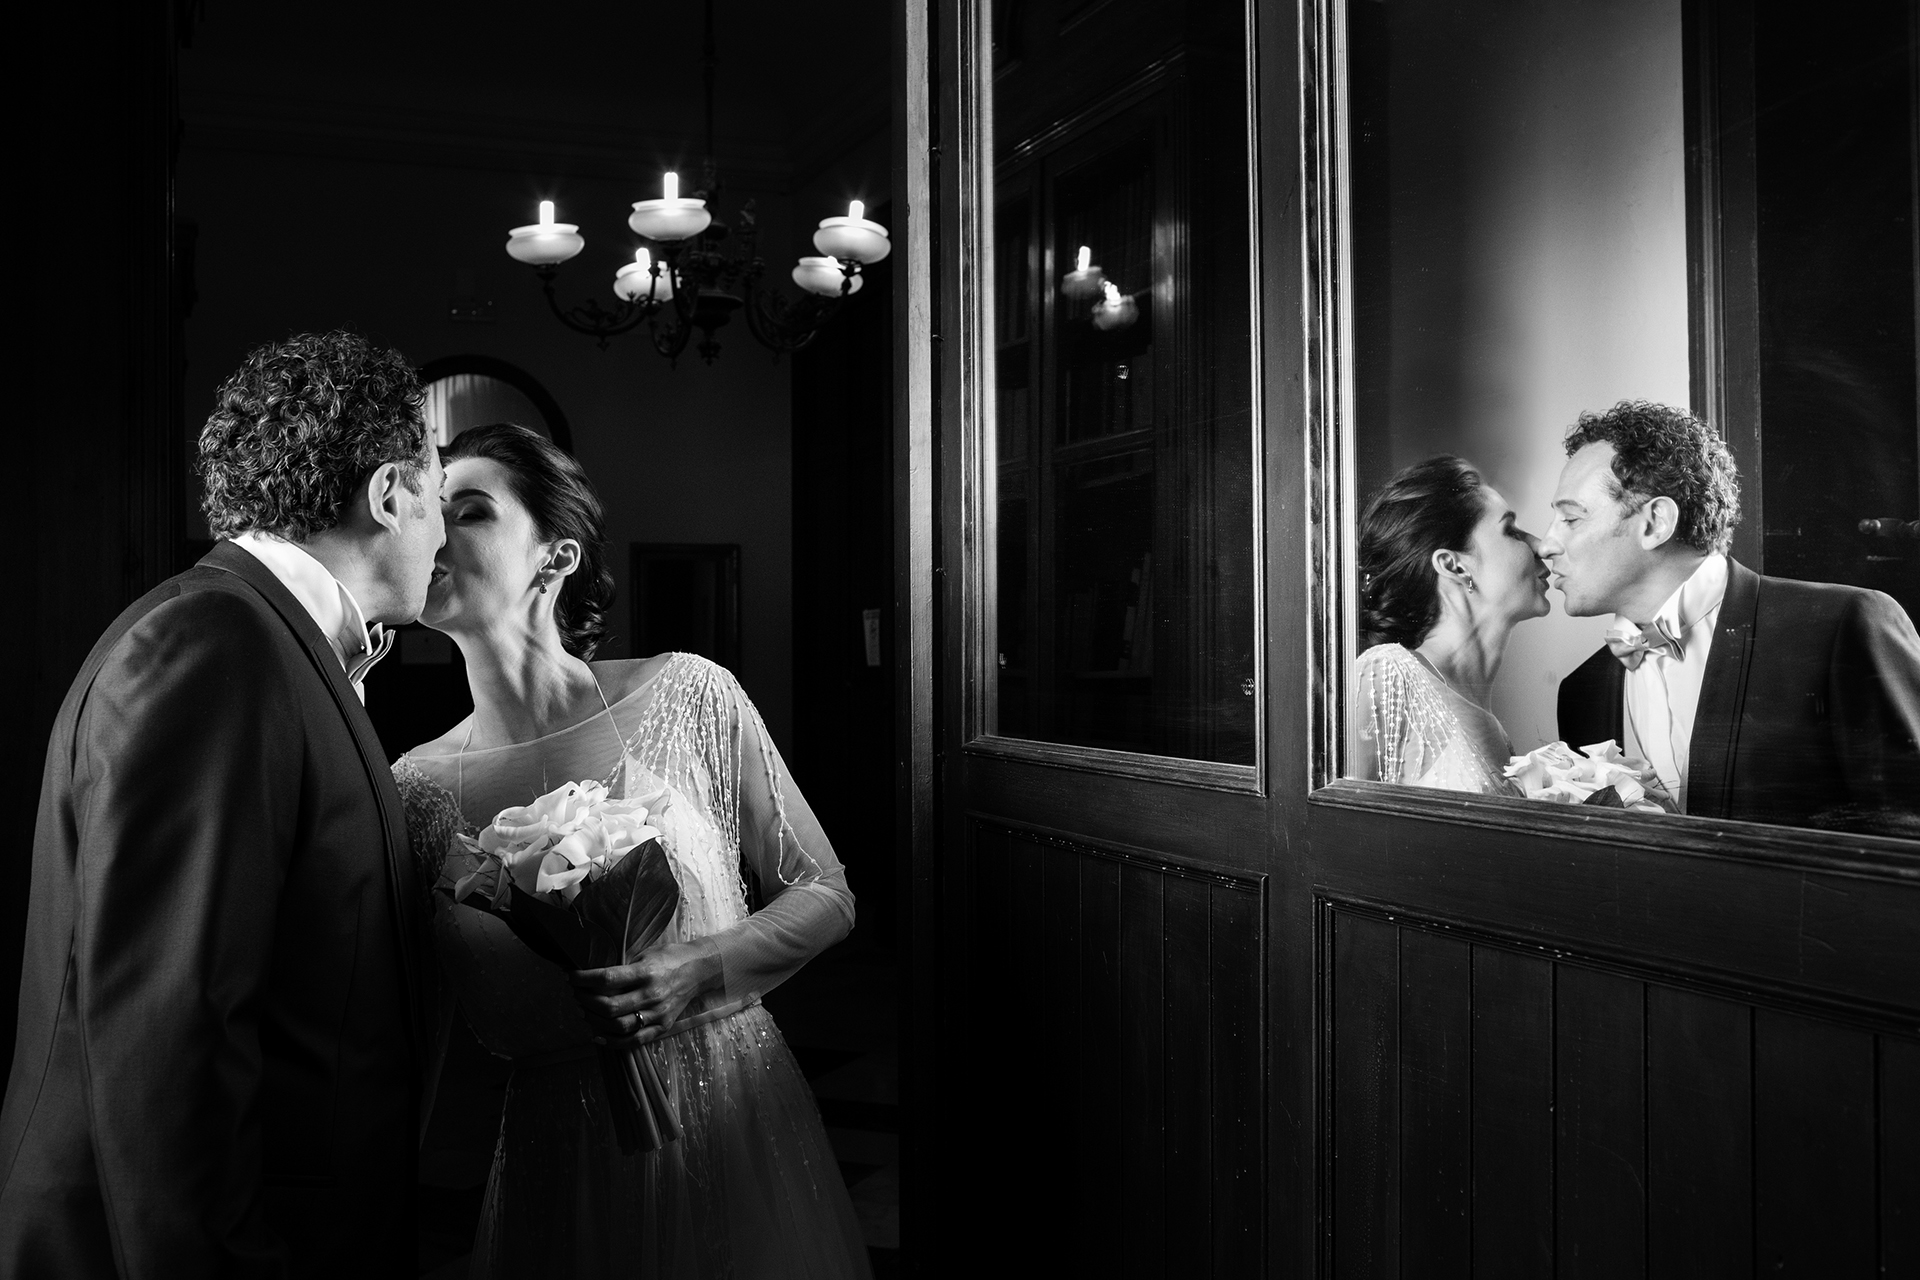 Trapani, Sicily, Italy Elopement Wedding Photos | The newlywed couple steals a kiss after their small, intimate town hall wedding ceremony